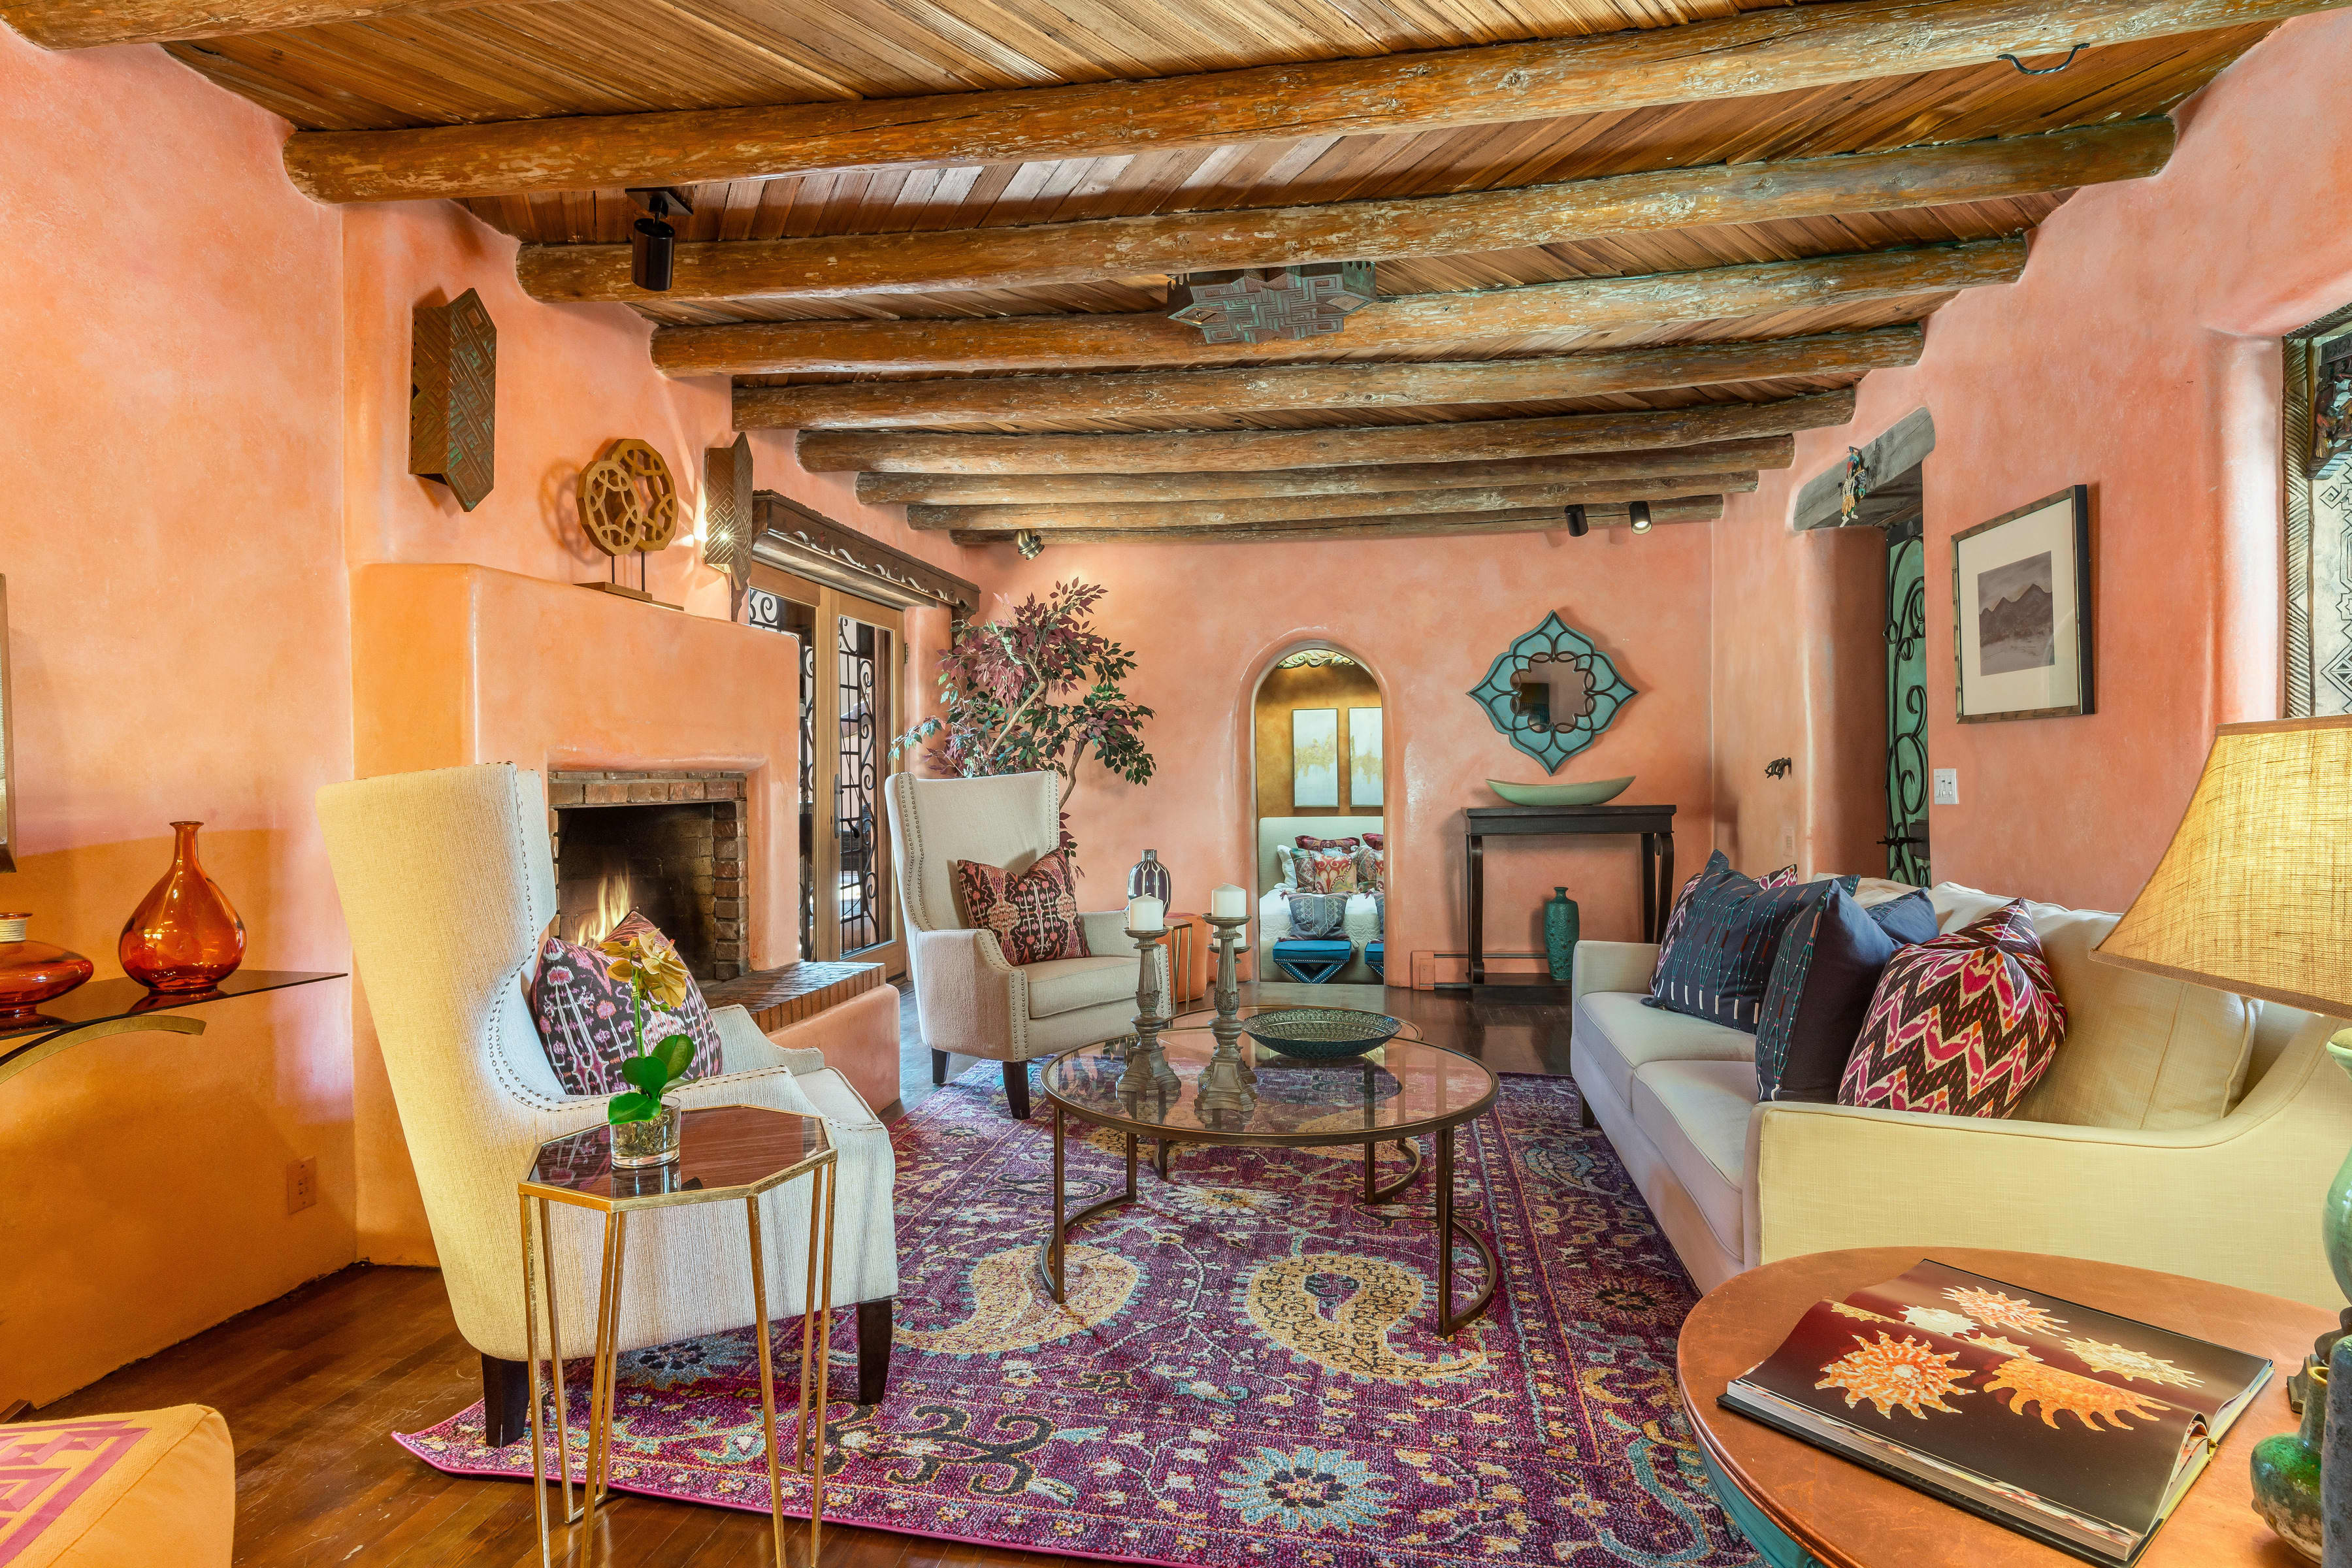 Homes For Sale Santa Fe - 100 Lorenzo Road | Apartment Therapy